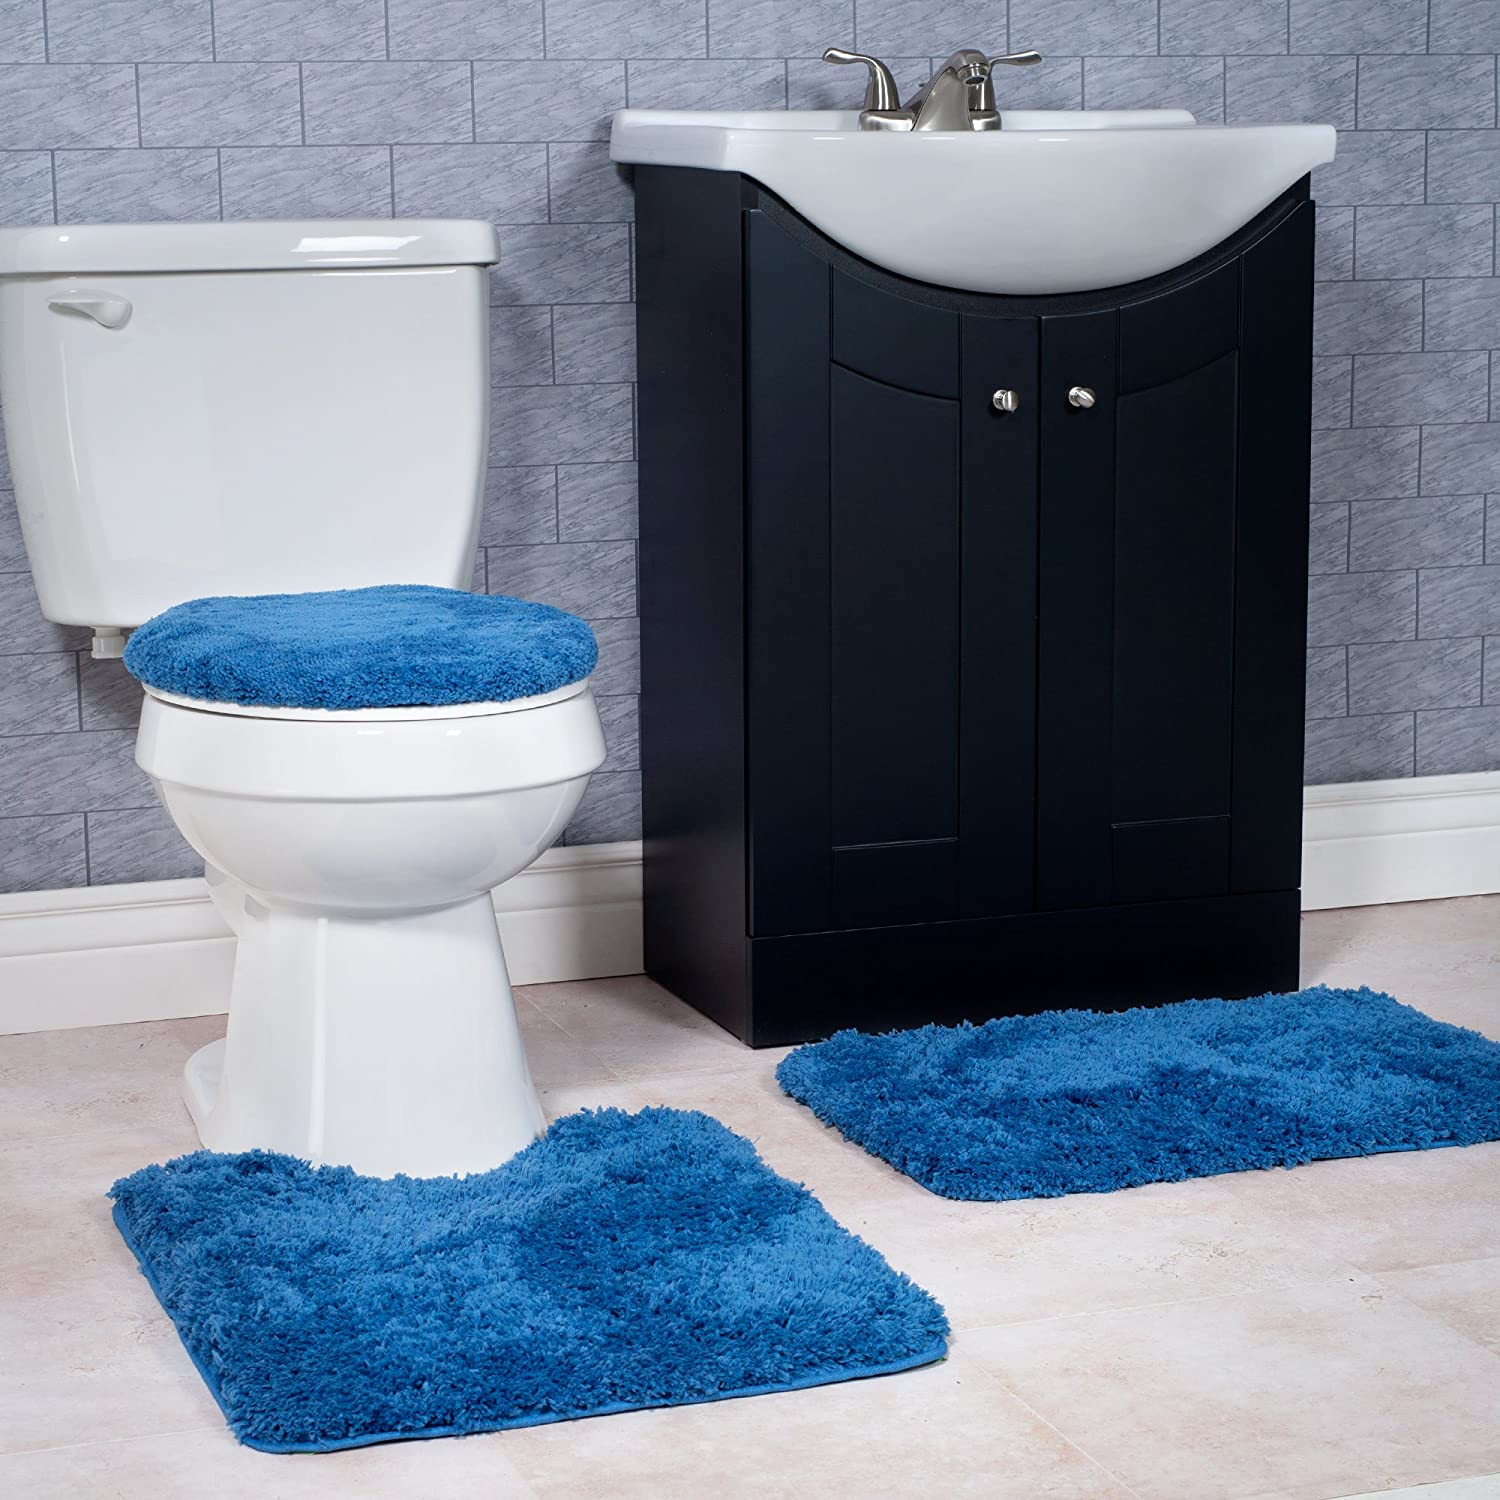 Awe Inspiring Details About 3 Soft Piece Bath Rug Mat Set Blue Navy Non Slip For Bathroom Toilet Seat Cover Machost Co Dining Chair Design Ideas Machostcouk